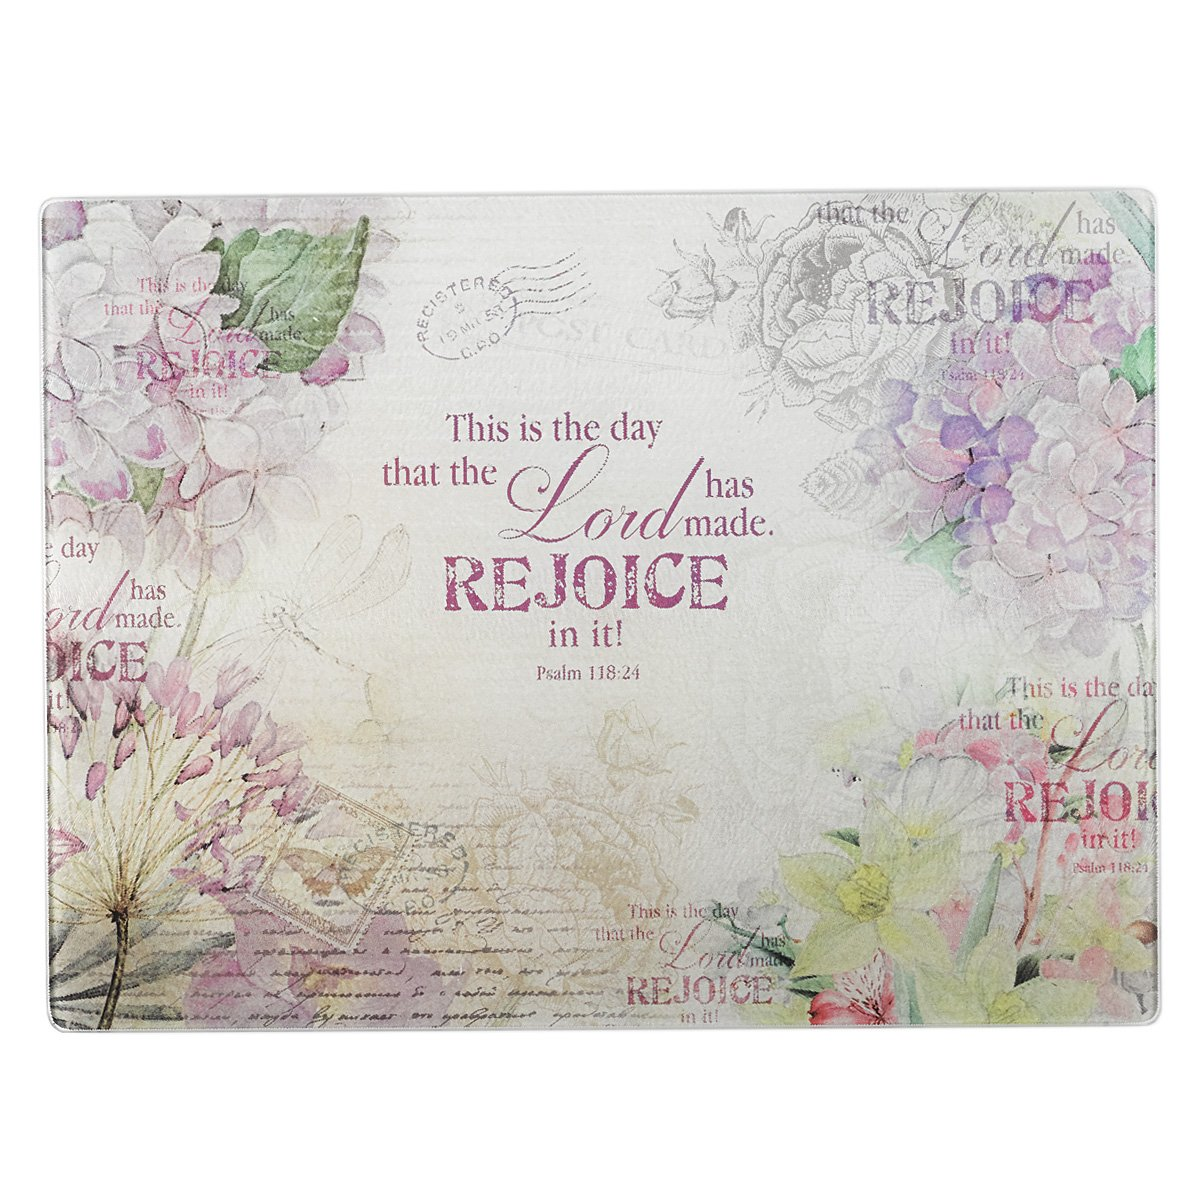 Floral Inspirations Collection Glass Cutting Board / Trivet (Large: 15 3/4 x 11 7/8) - Psalm 118:24